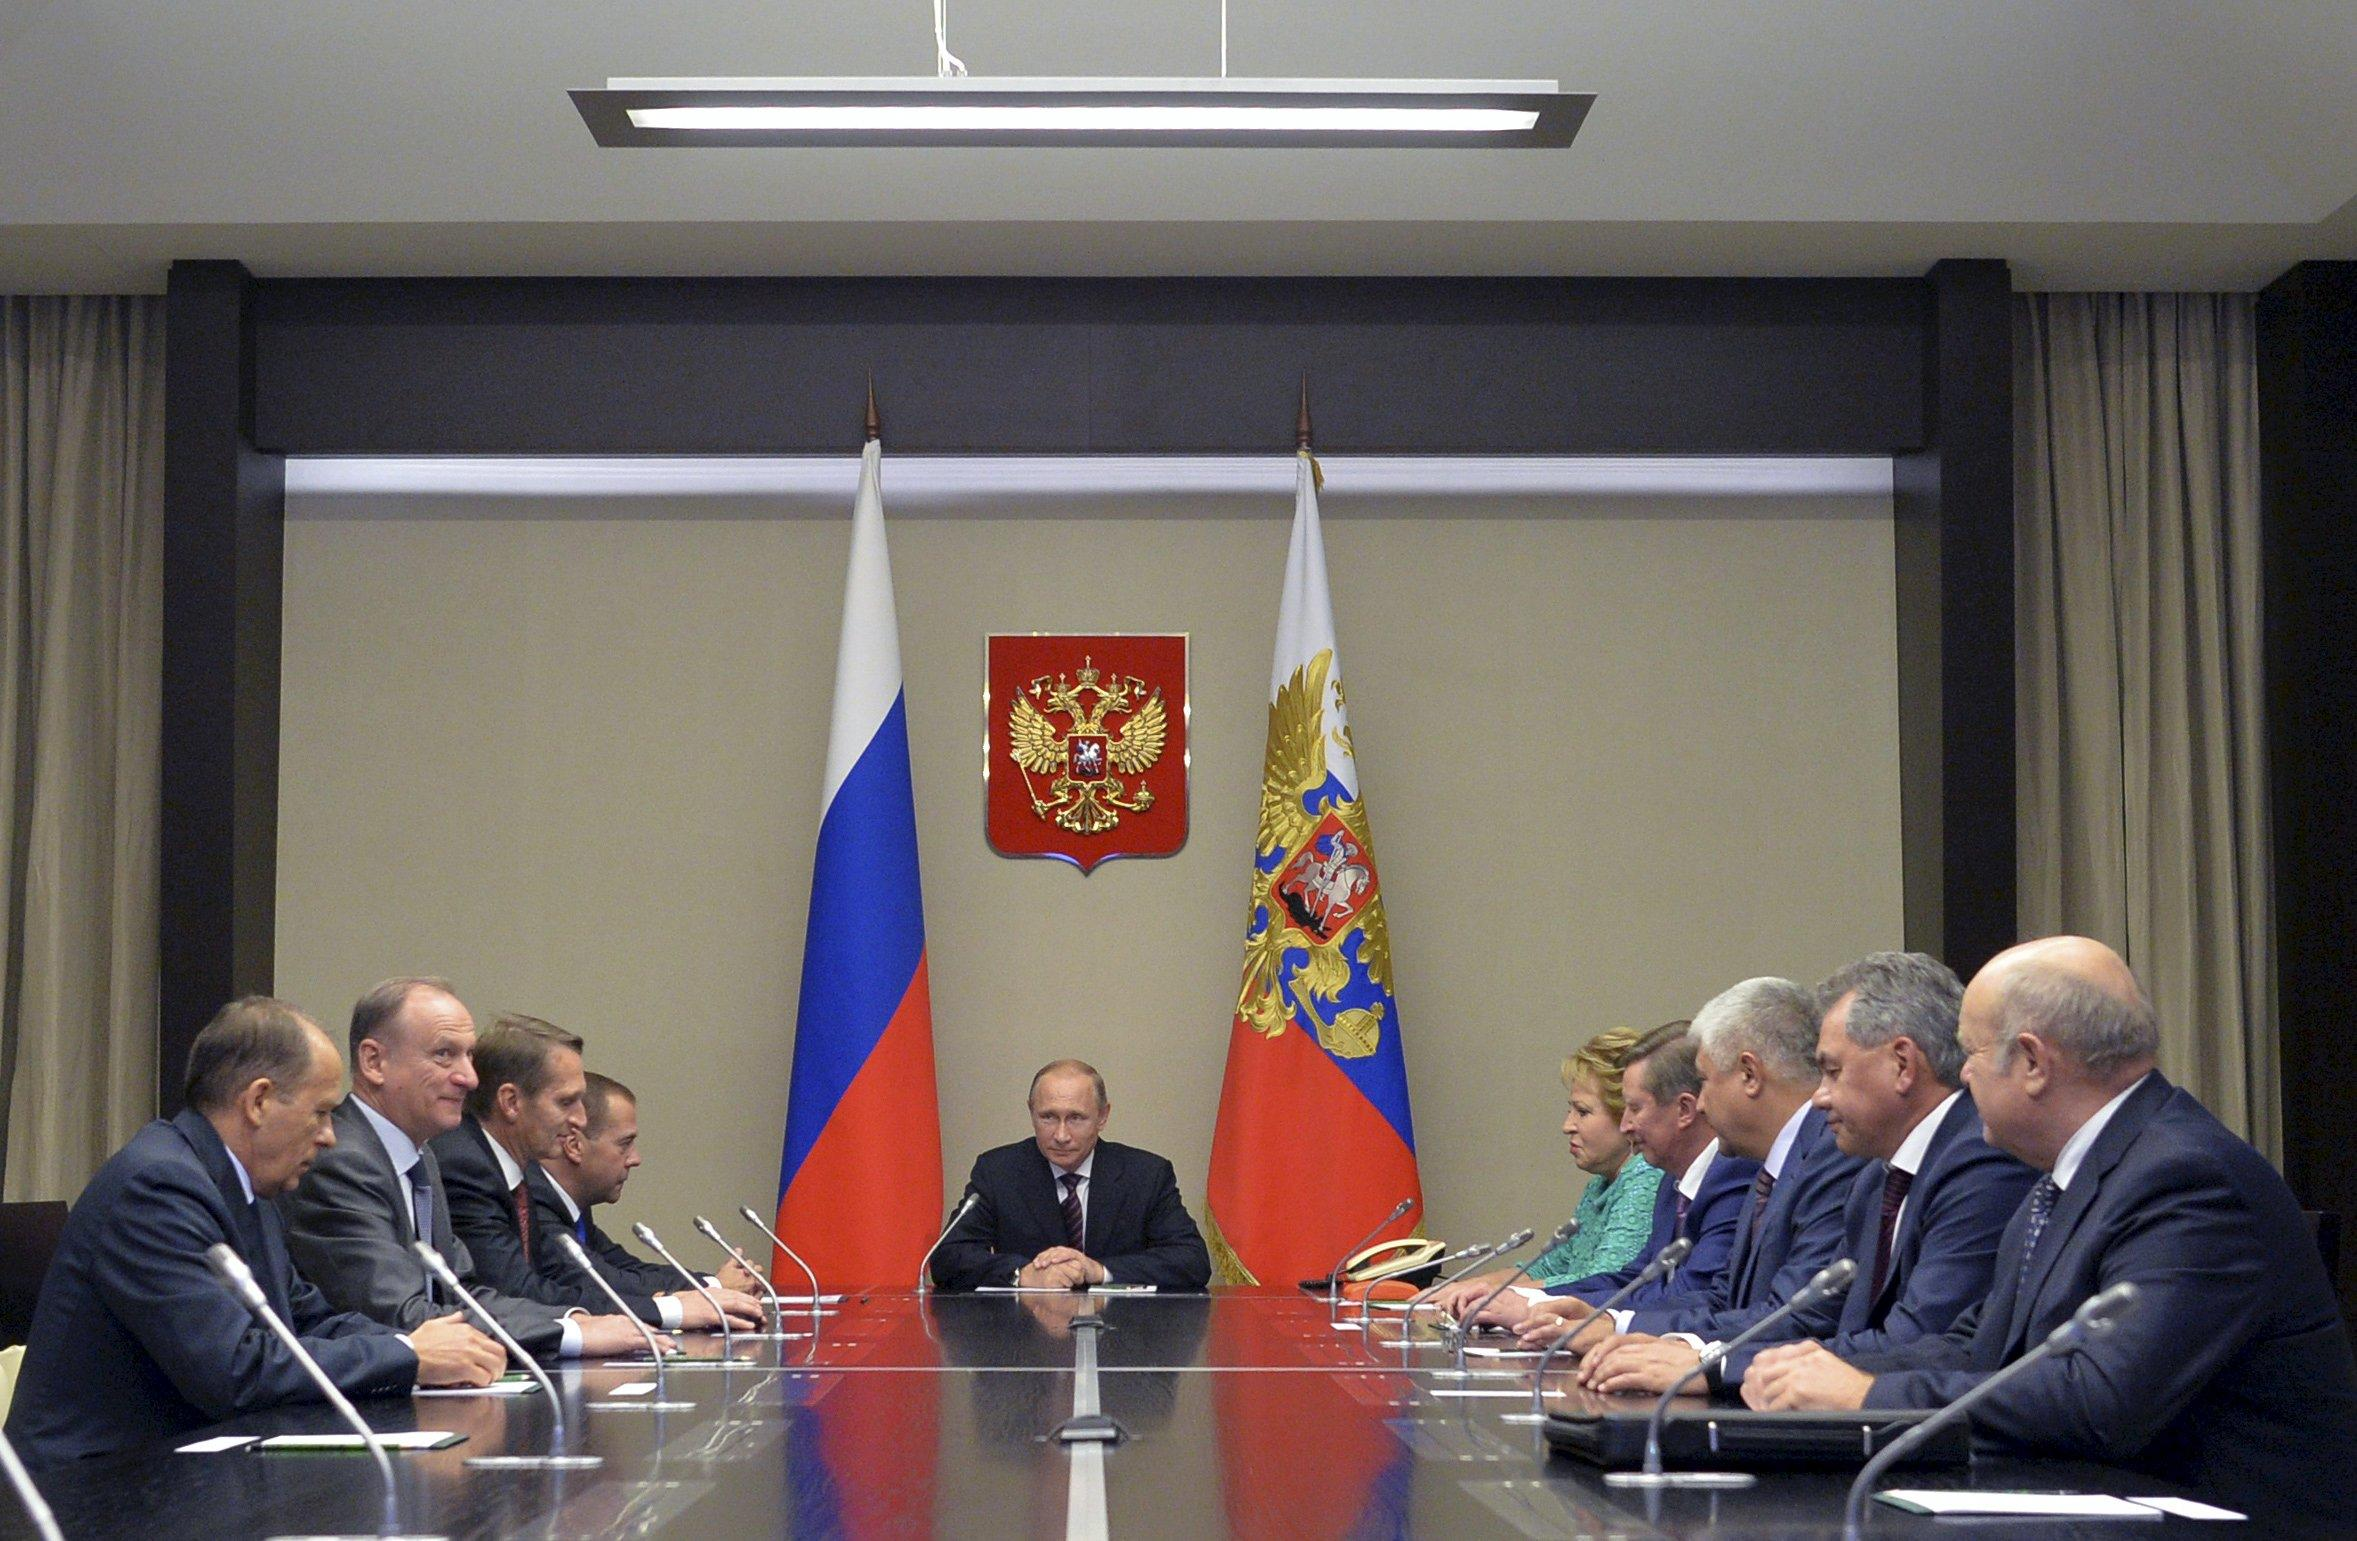 Russian President Vladimir Putin (C) chairs a meeting with members of the Security Council at the Novo-Ogaryovo state residence outside Moscow, Russia, September 29, 2015. REUTERS/Alexei Druzhinin/RIA Novosti/Kremlin ATTENTION EDITORS - THIS IMAGE HAS BEEN SUPPLIED BY A THIRD PARTY. IT IS DISTRIBUTED, EXACTLY AS RECEIVED BY REUTERS, AS A SERVICE TO CLIENTS.